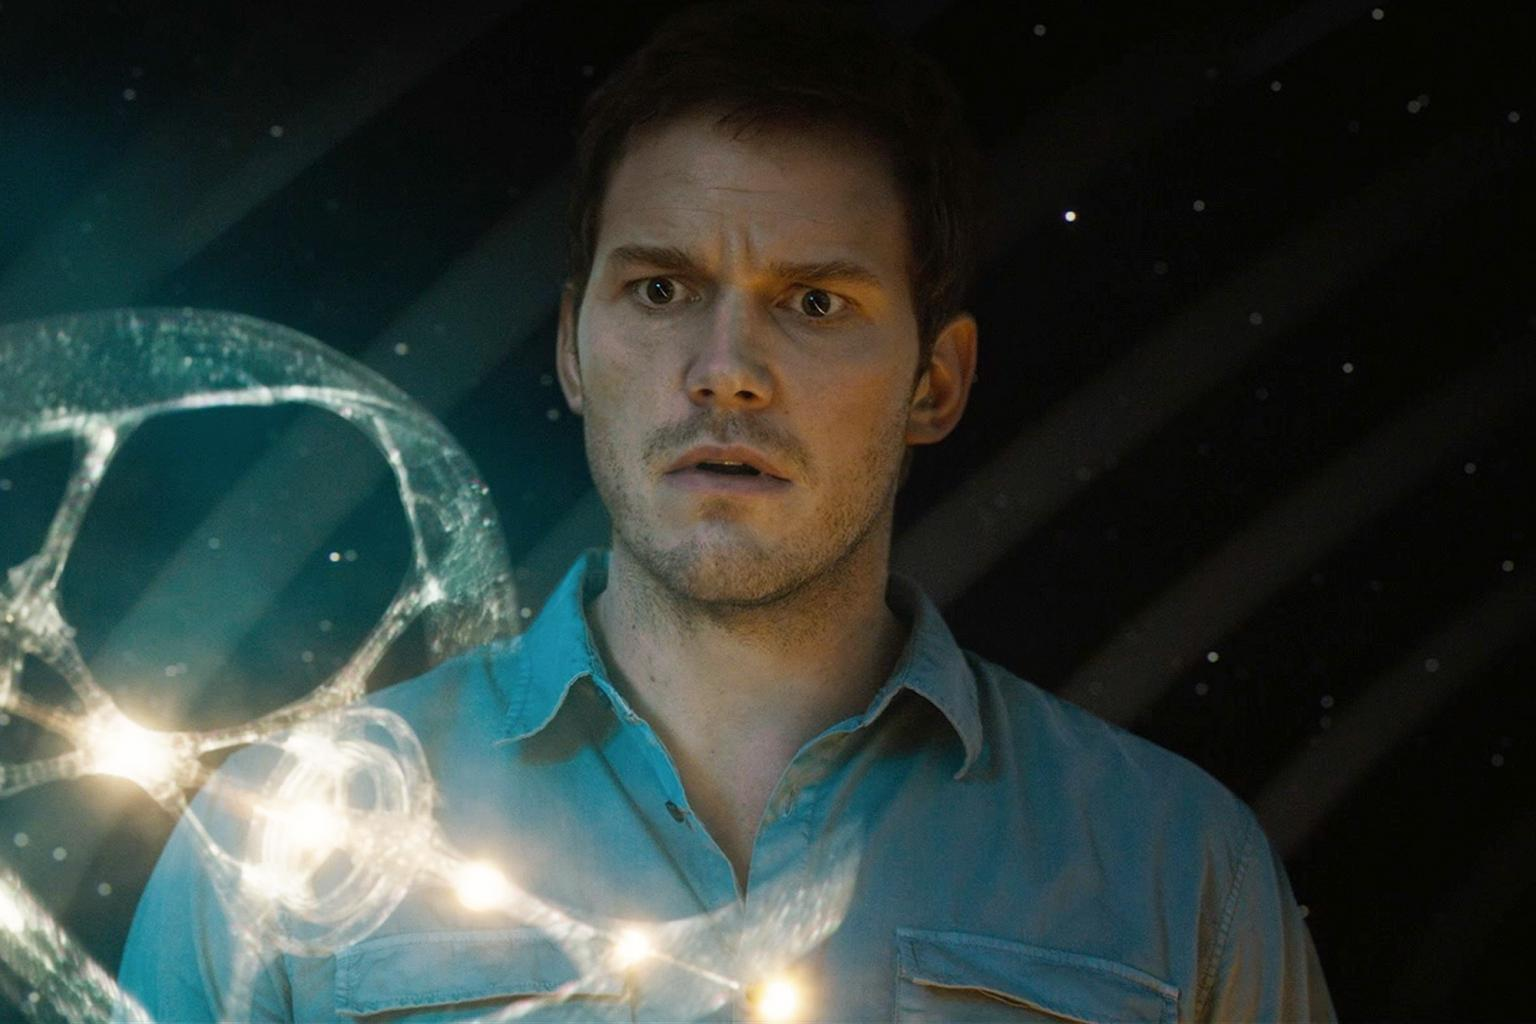 Chris Pratt Learns His Daunting Fate in New Passengers Clip: 'I'm the Only One Awake'